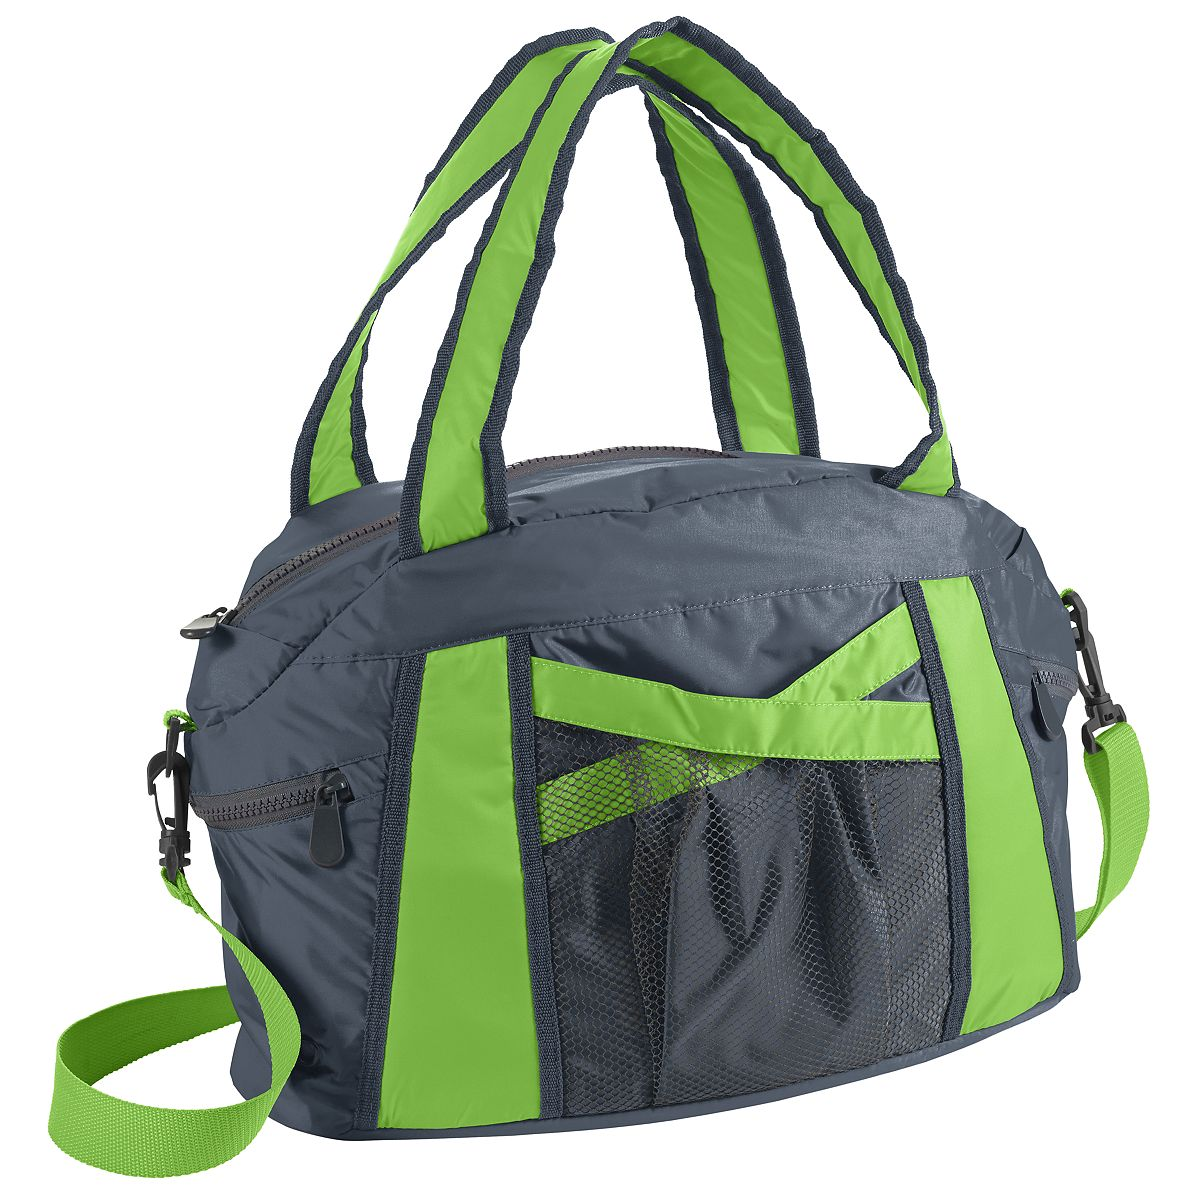 1145 Cruise Duffel GRAPHITE/LIME OS